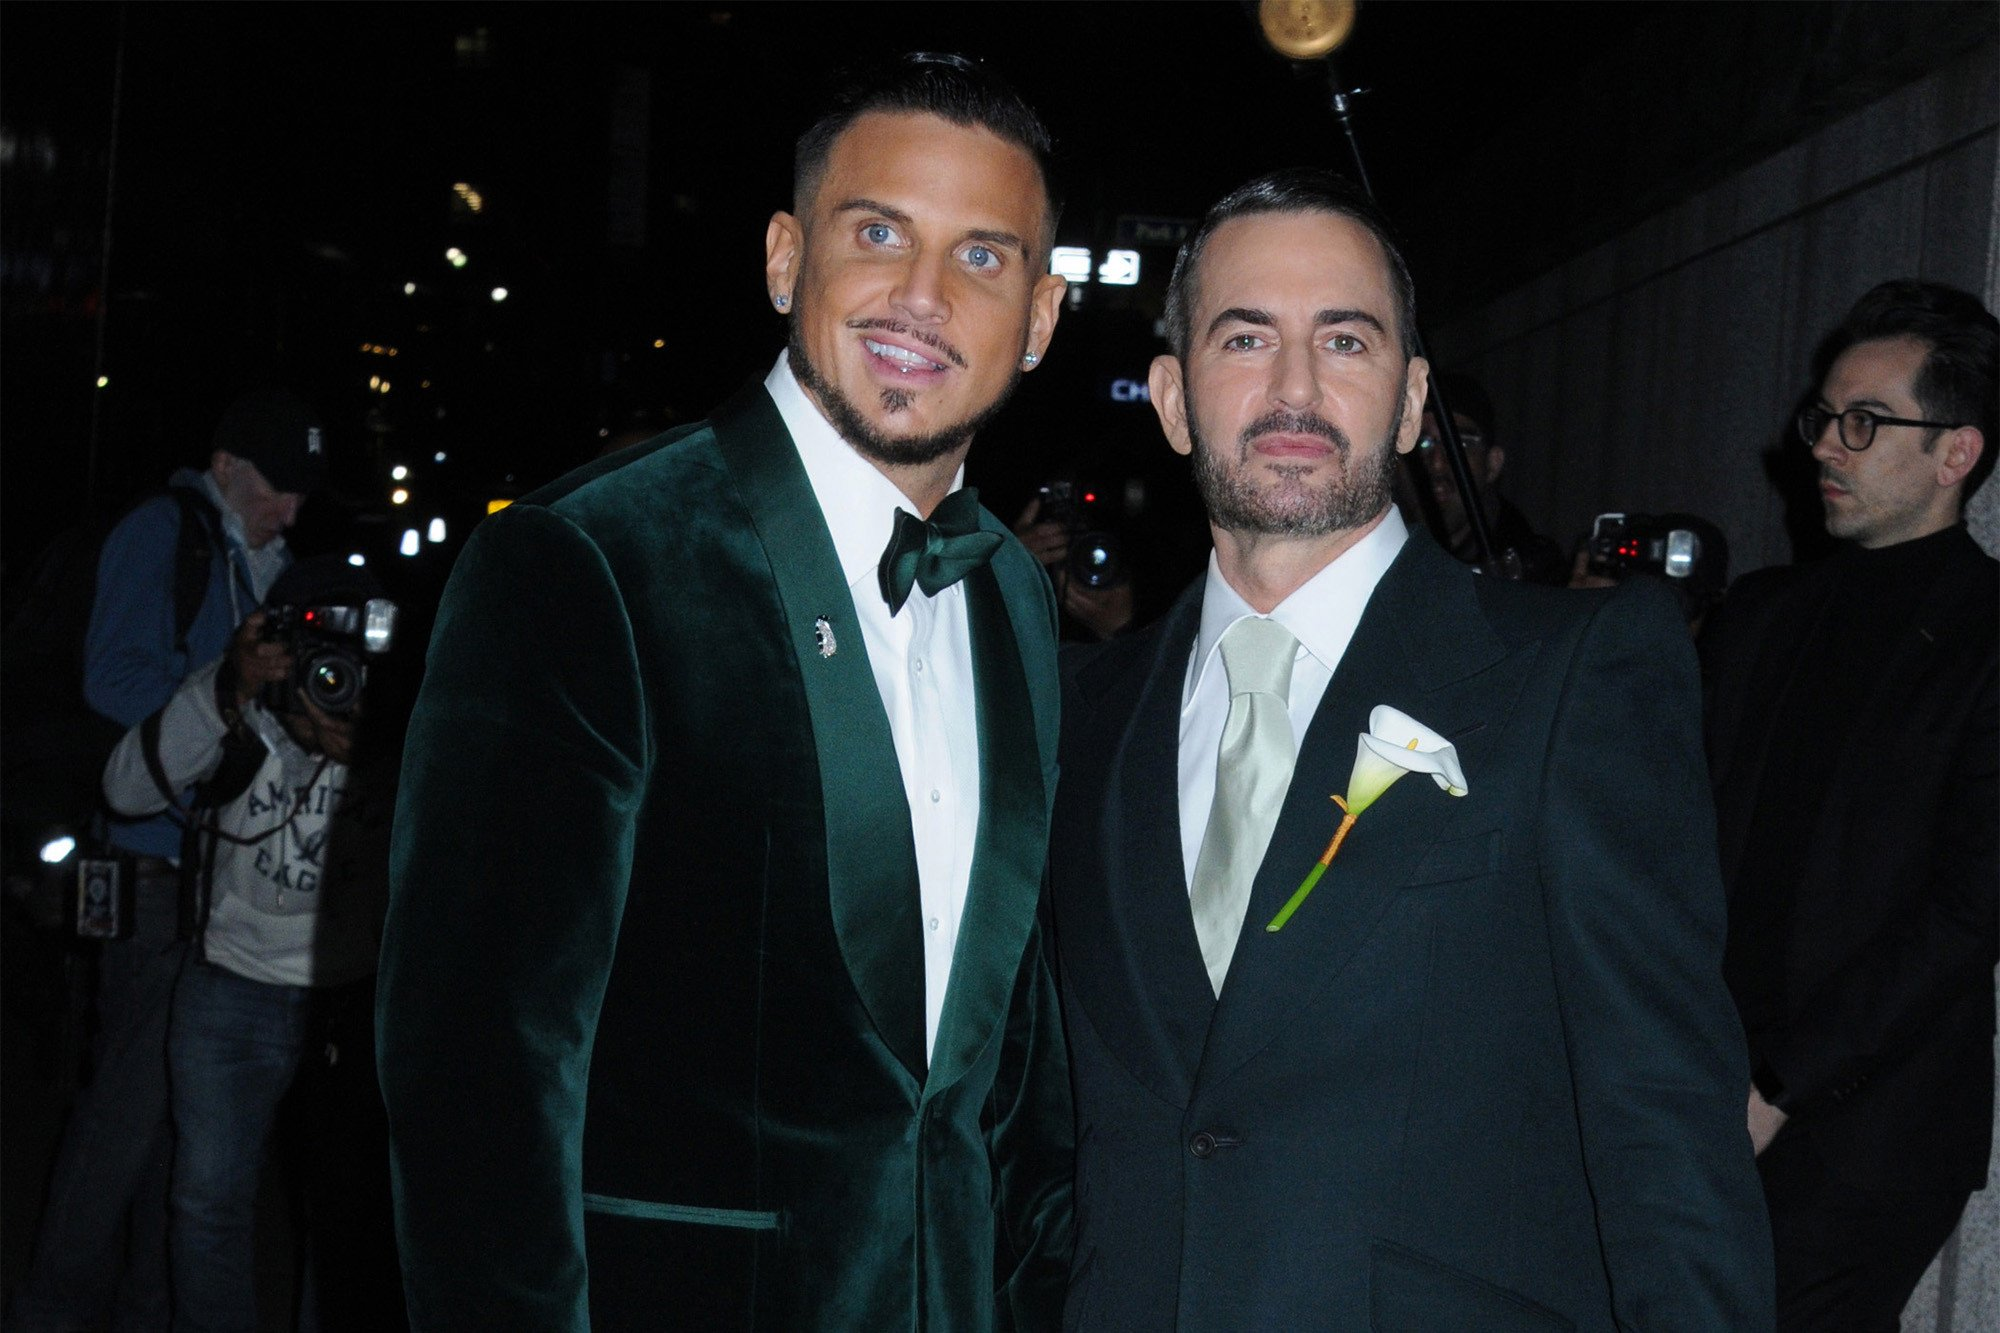 Inside Marc Jacobs' starry wedding to Charly Defrancesco